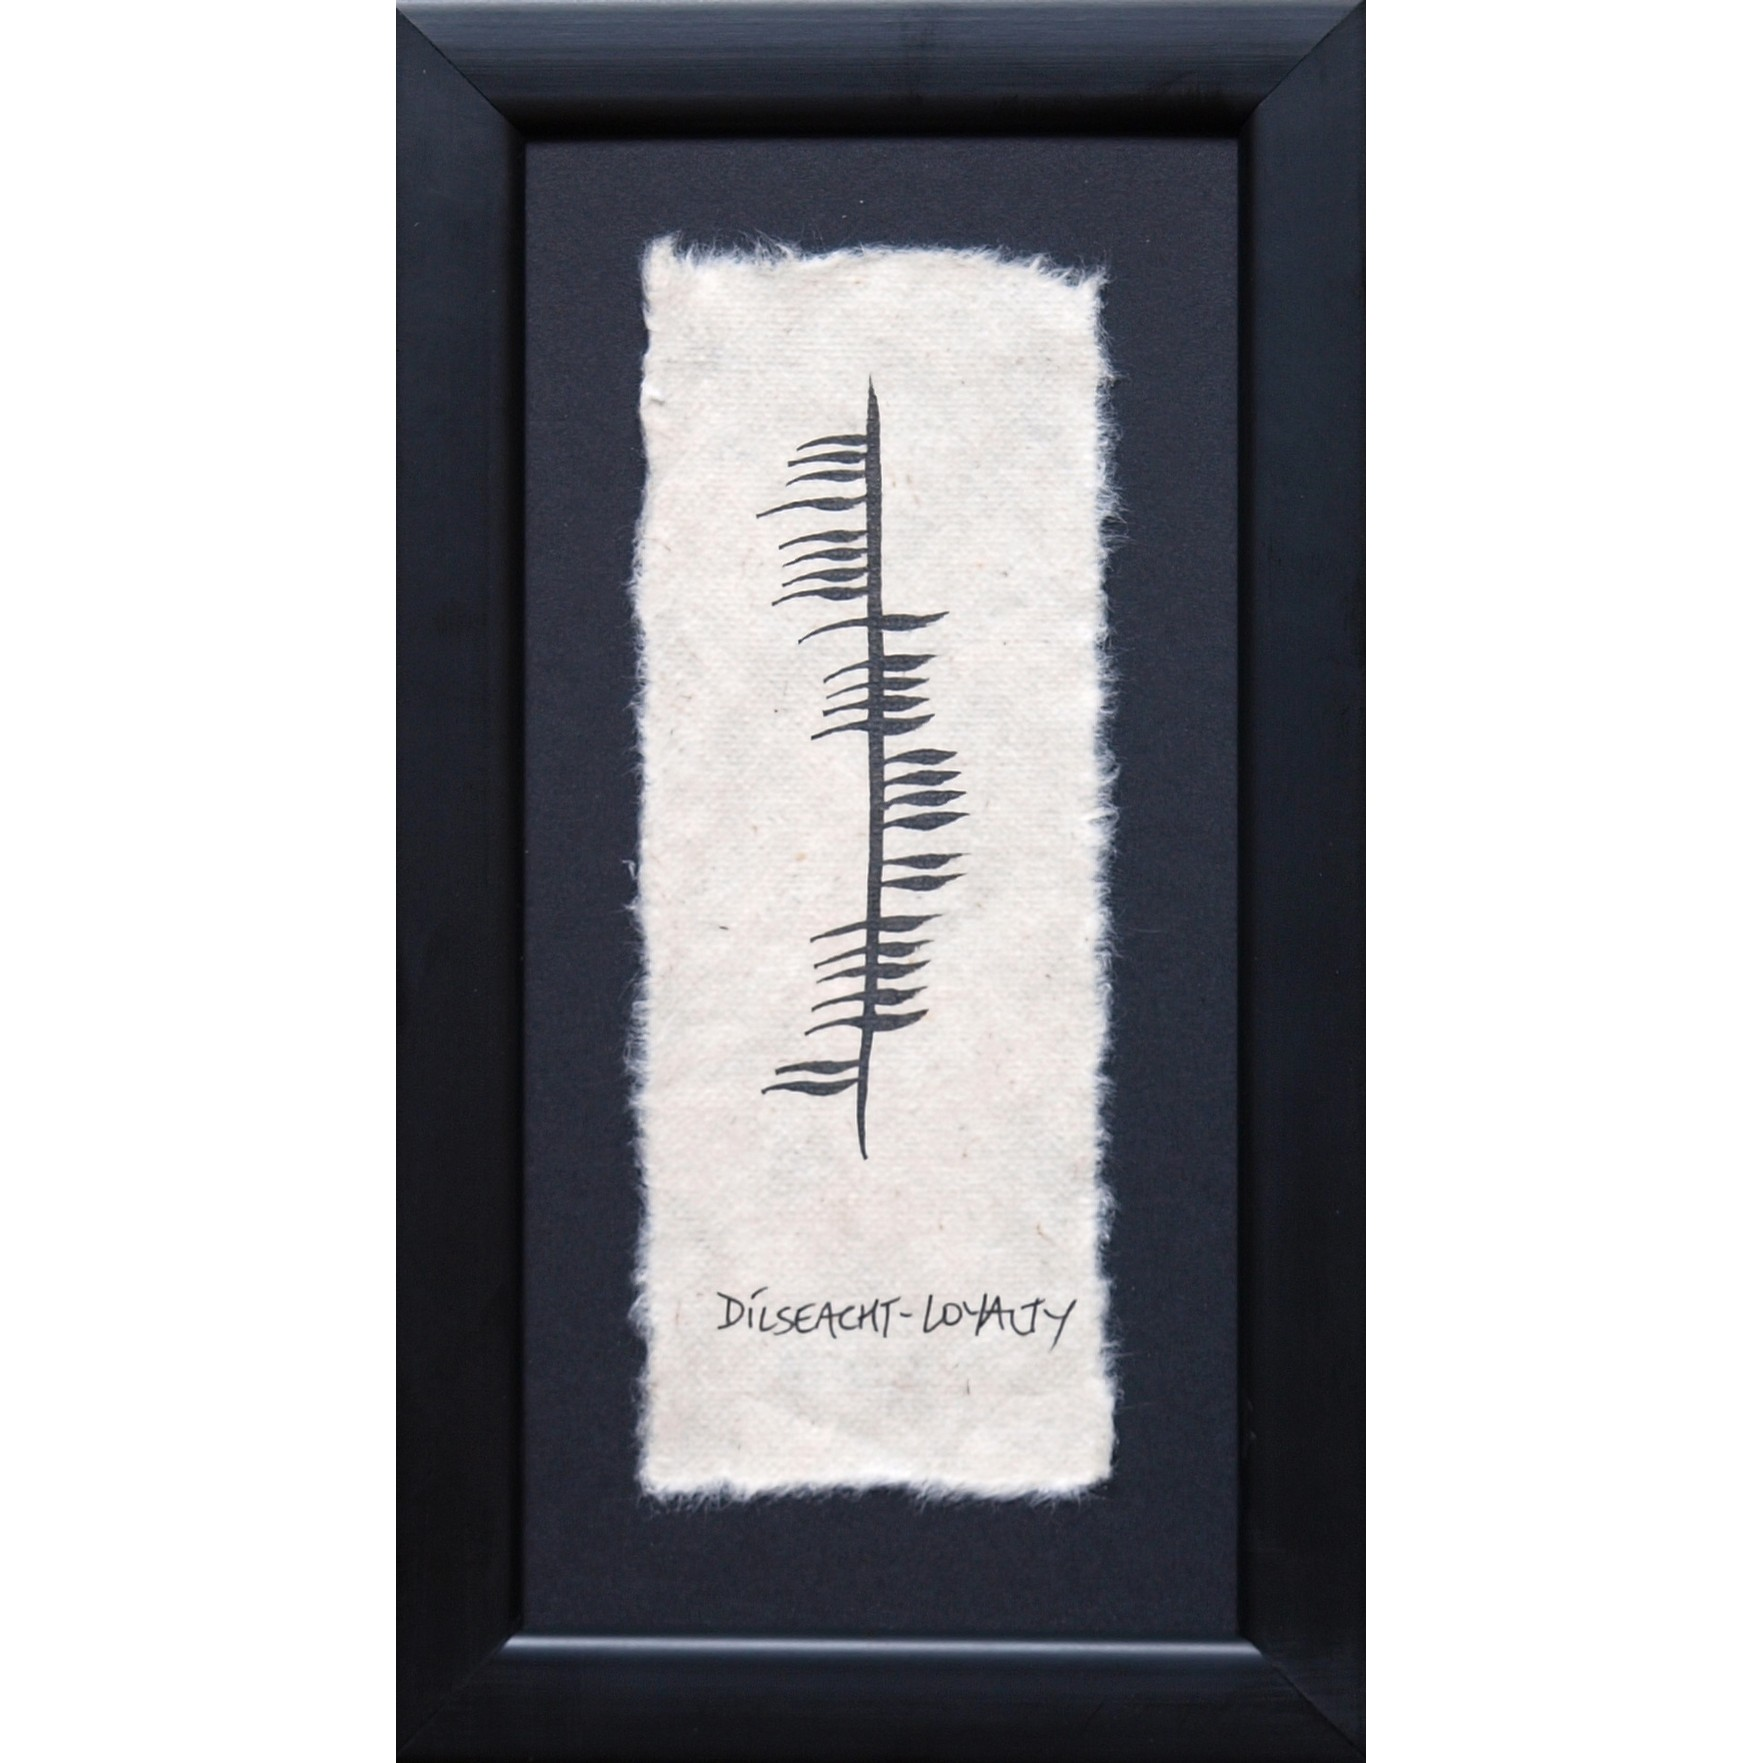 Ogham Wishes Ogham Dilseacht/Loyalty